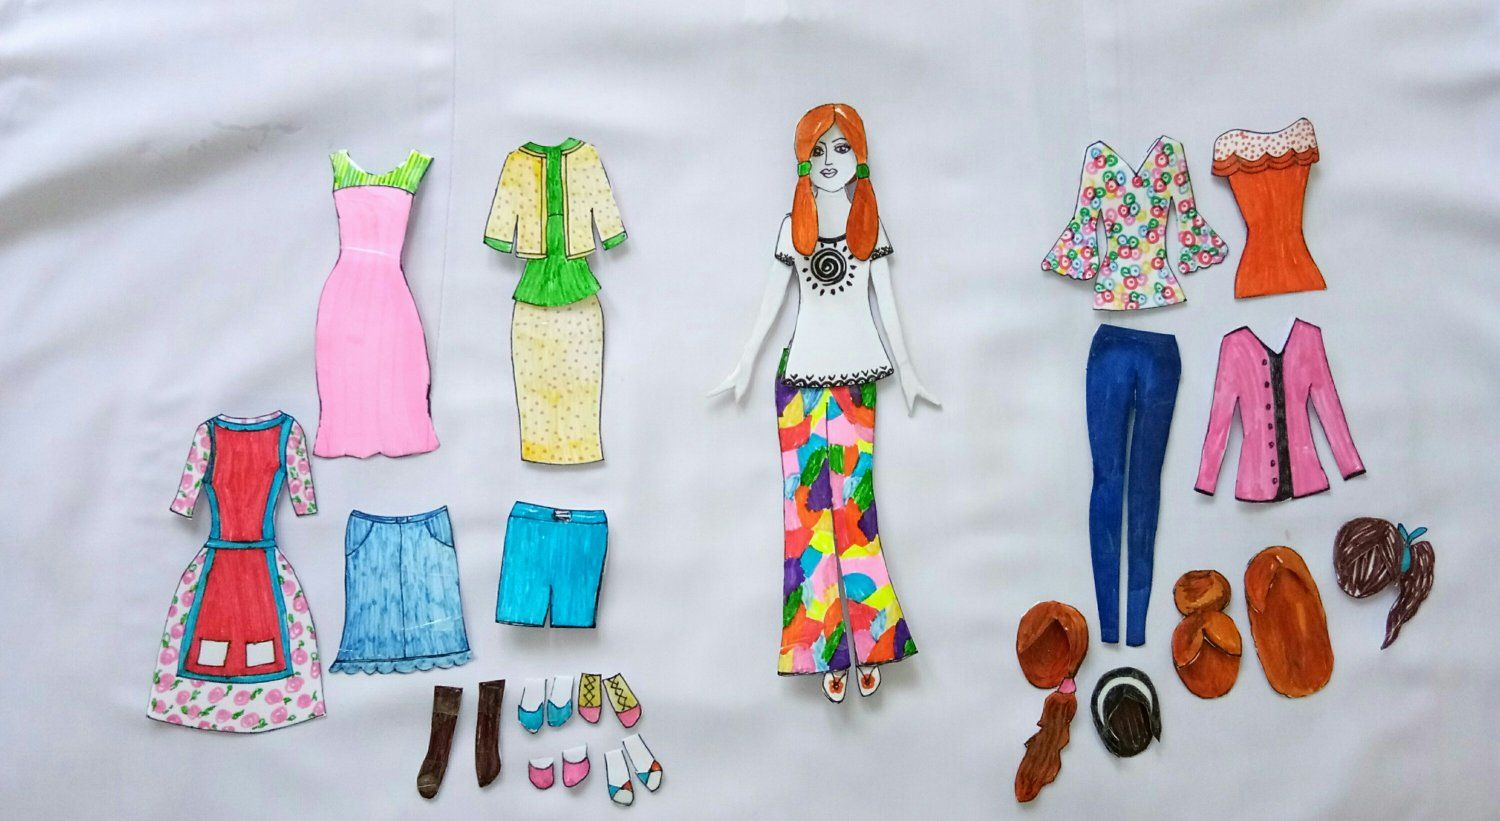 How To Make Paper Doll With Many Dresses Easy Craft Ideas Paper Dolls Paper Doll Making Paper Doll Dress